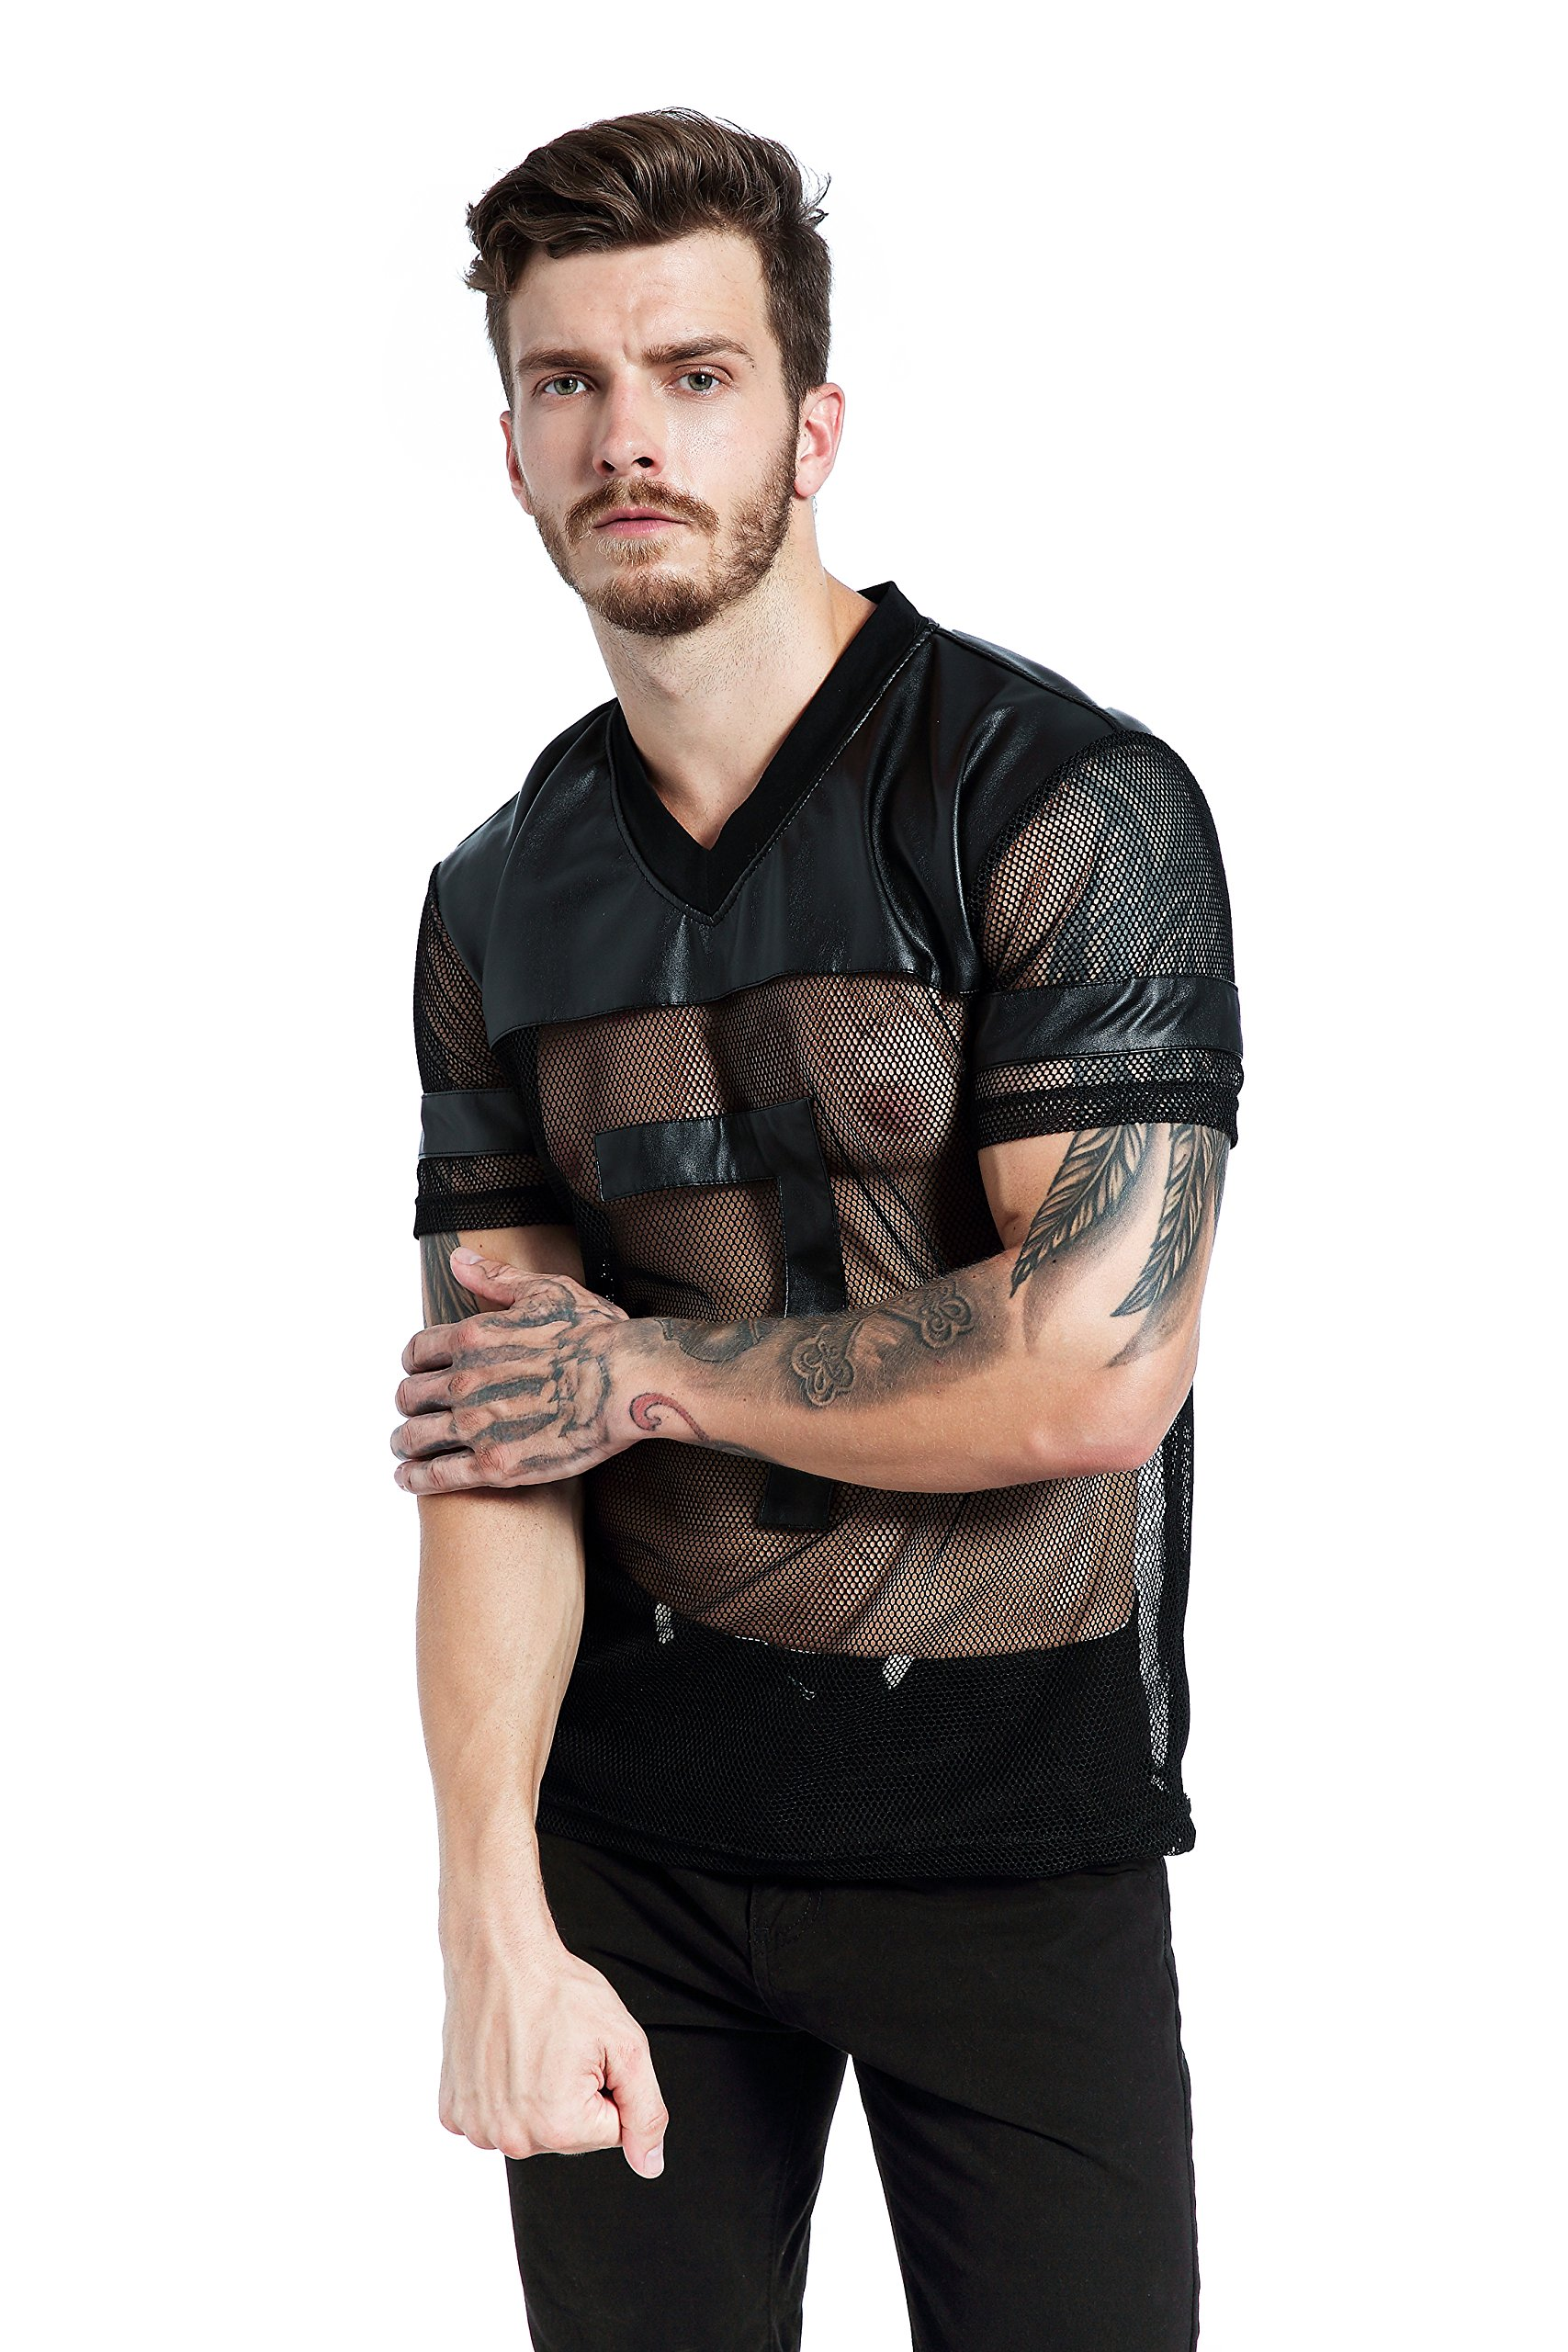 e6d178e3934f6 Get Quotations · F plus R Mens Novelty Character T-Shirt Fashion Faux  Leather Mesh Stitching Tees